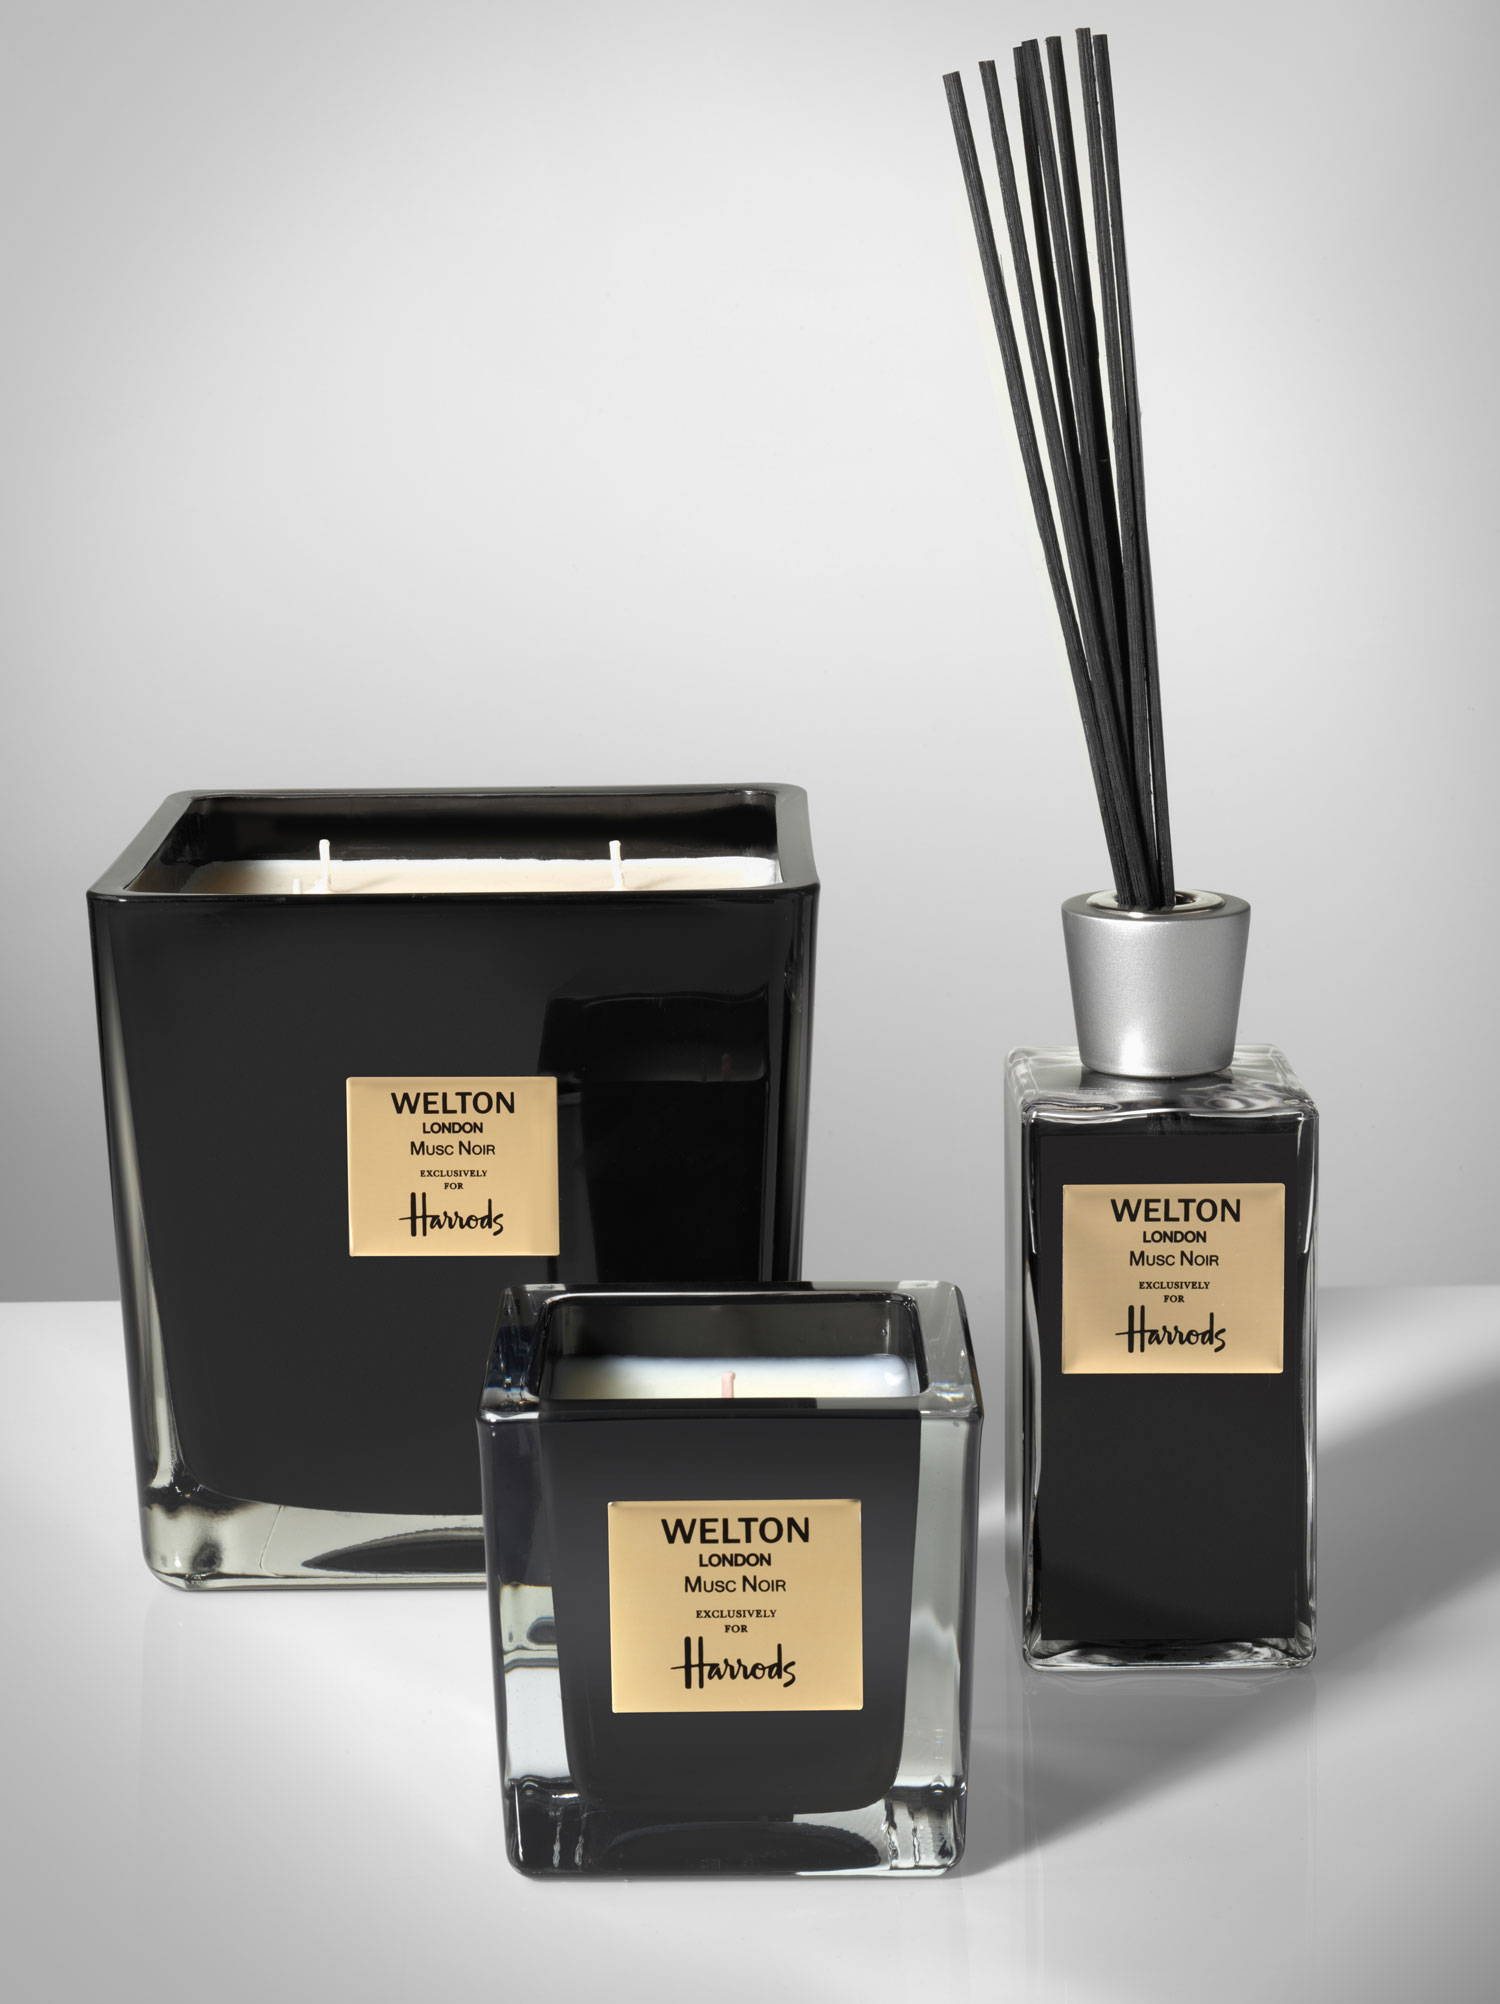 Special Edition Musc Noir exclusively for Harrods by Welton London, scented candles and home fragrance diffusers